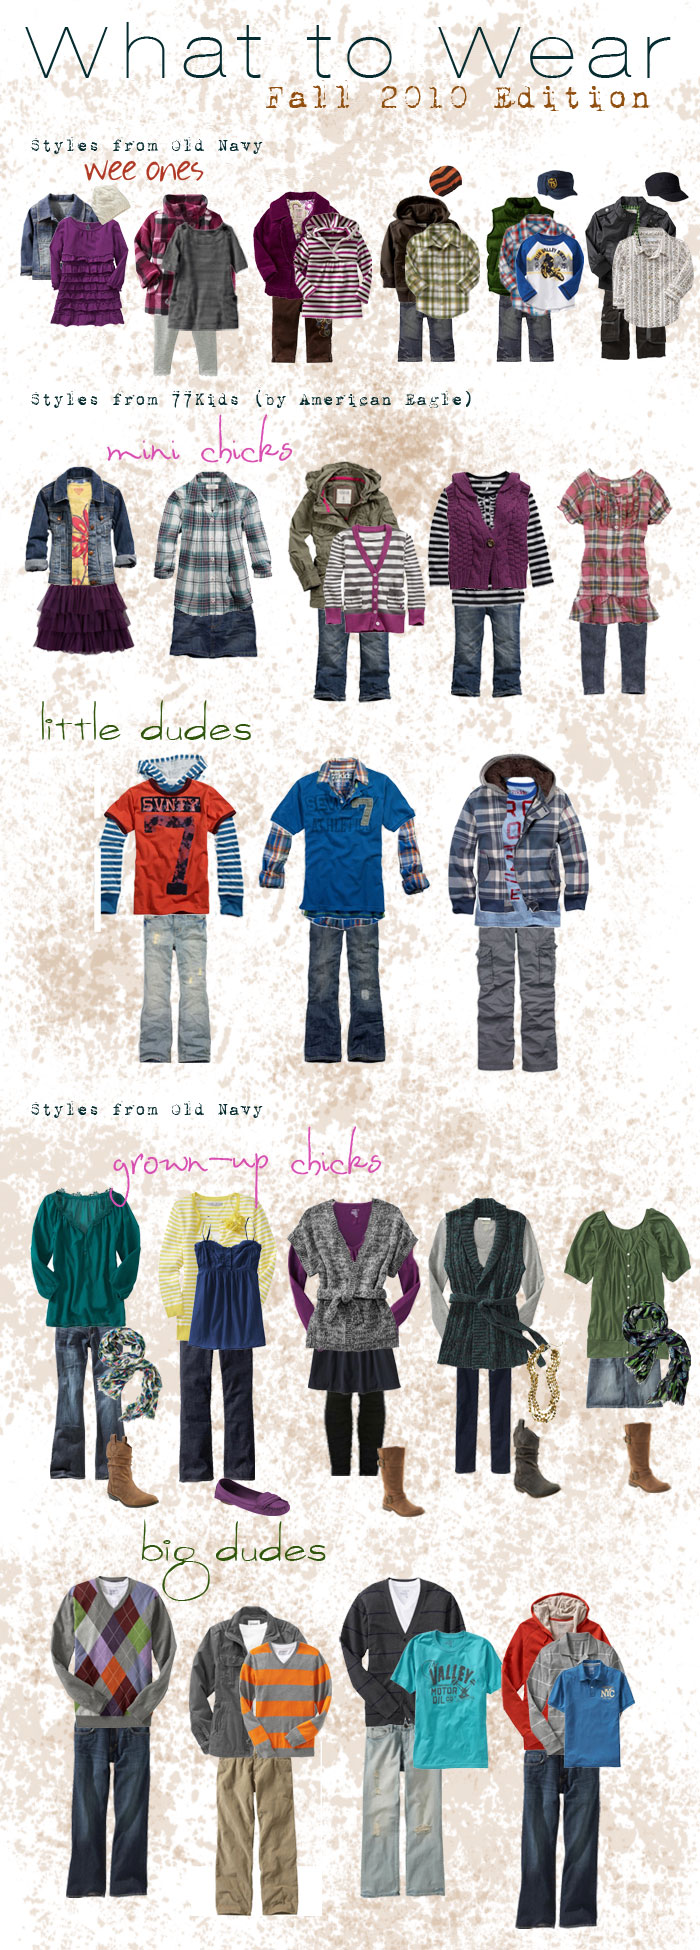 Fall 2010 What to Wear